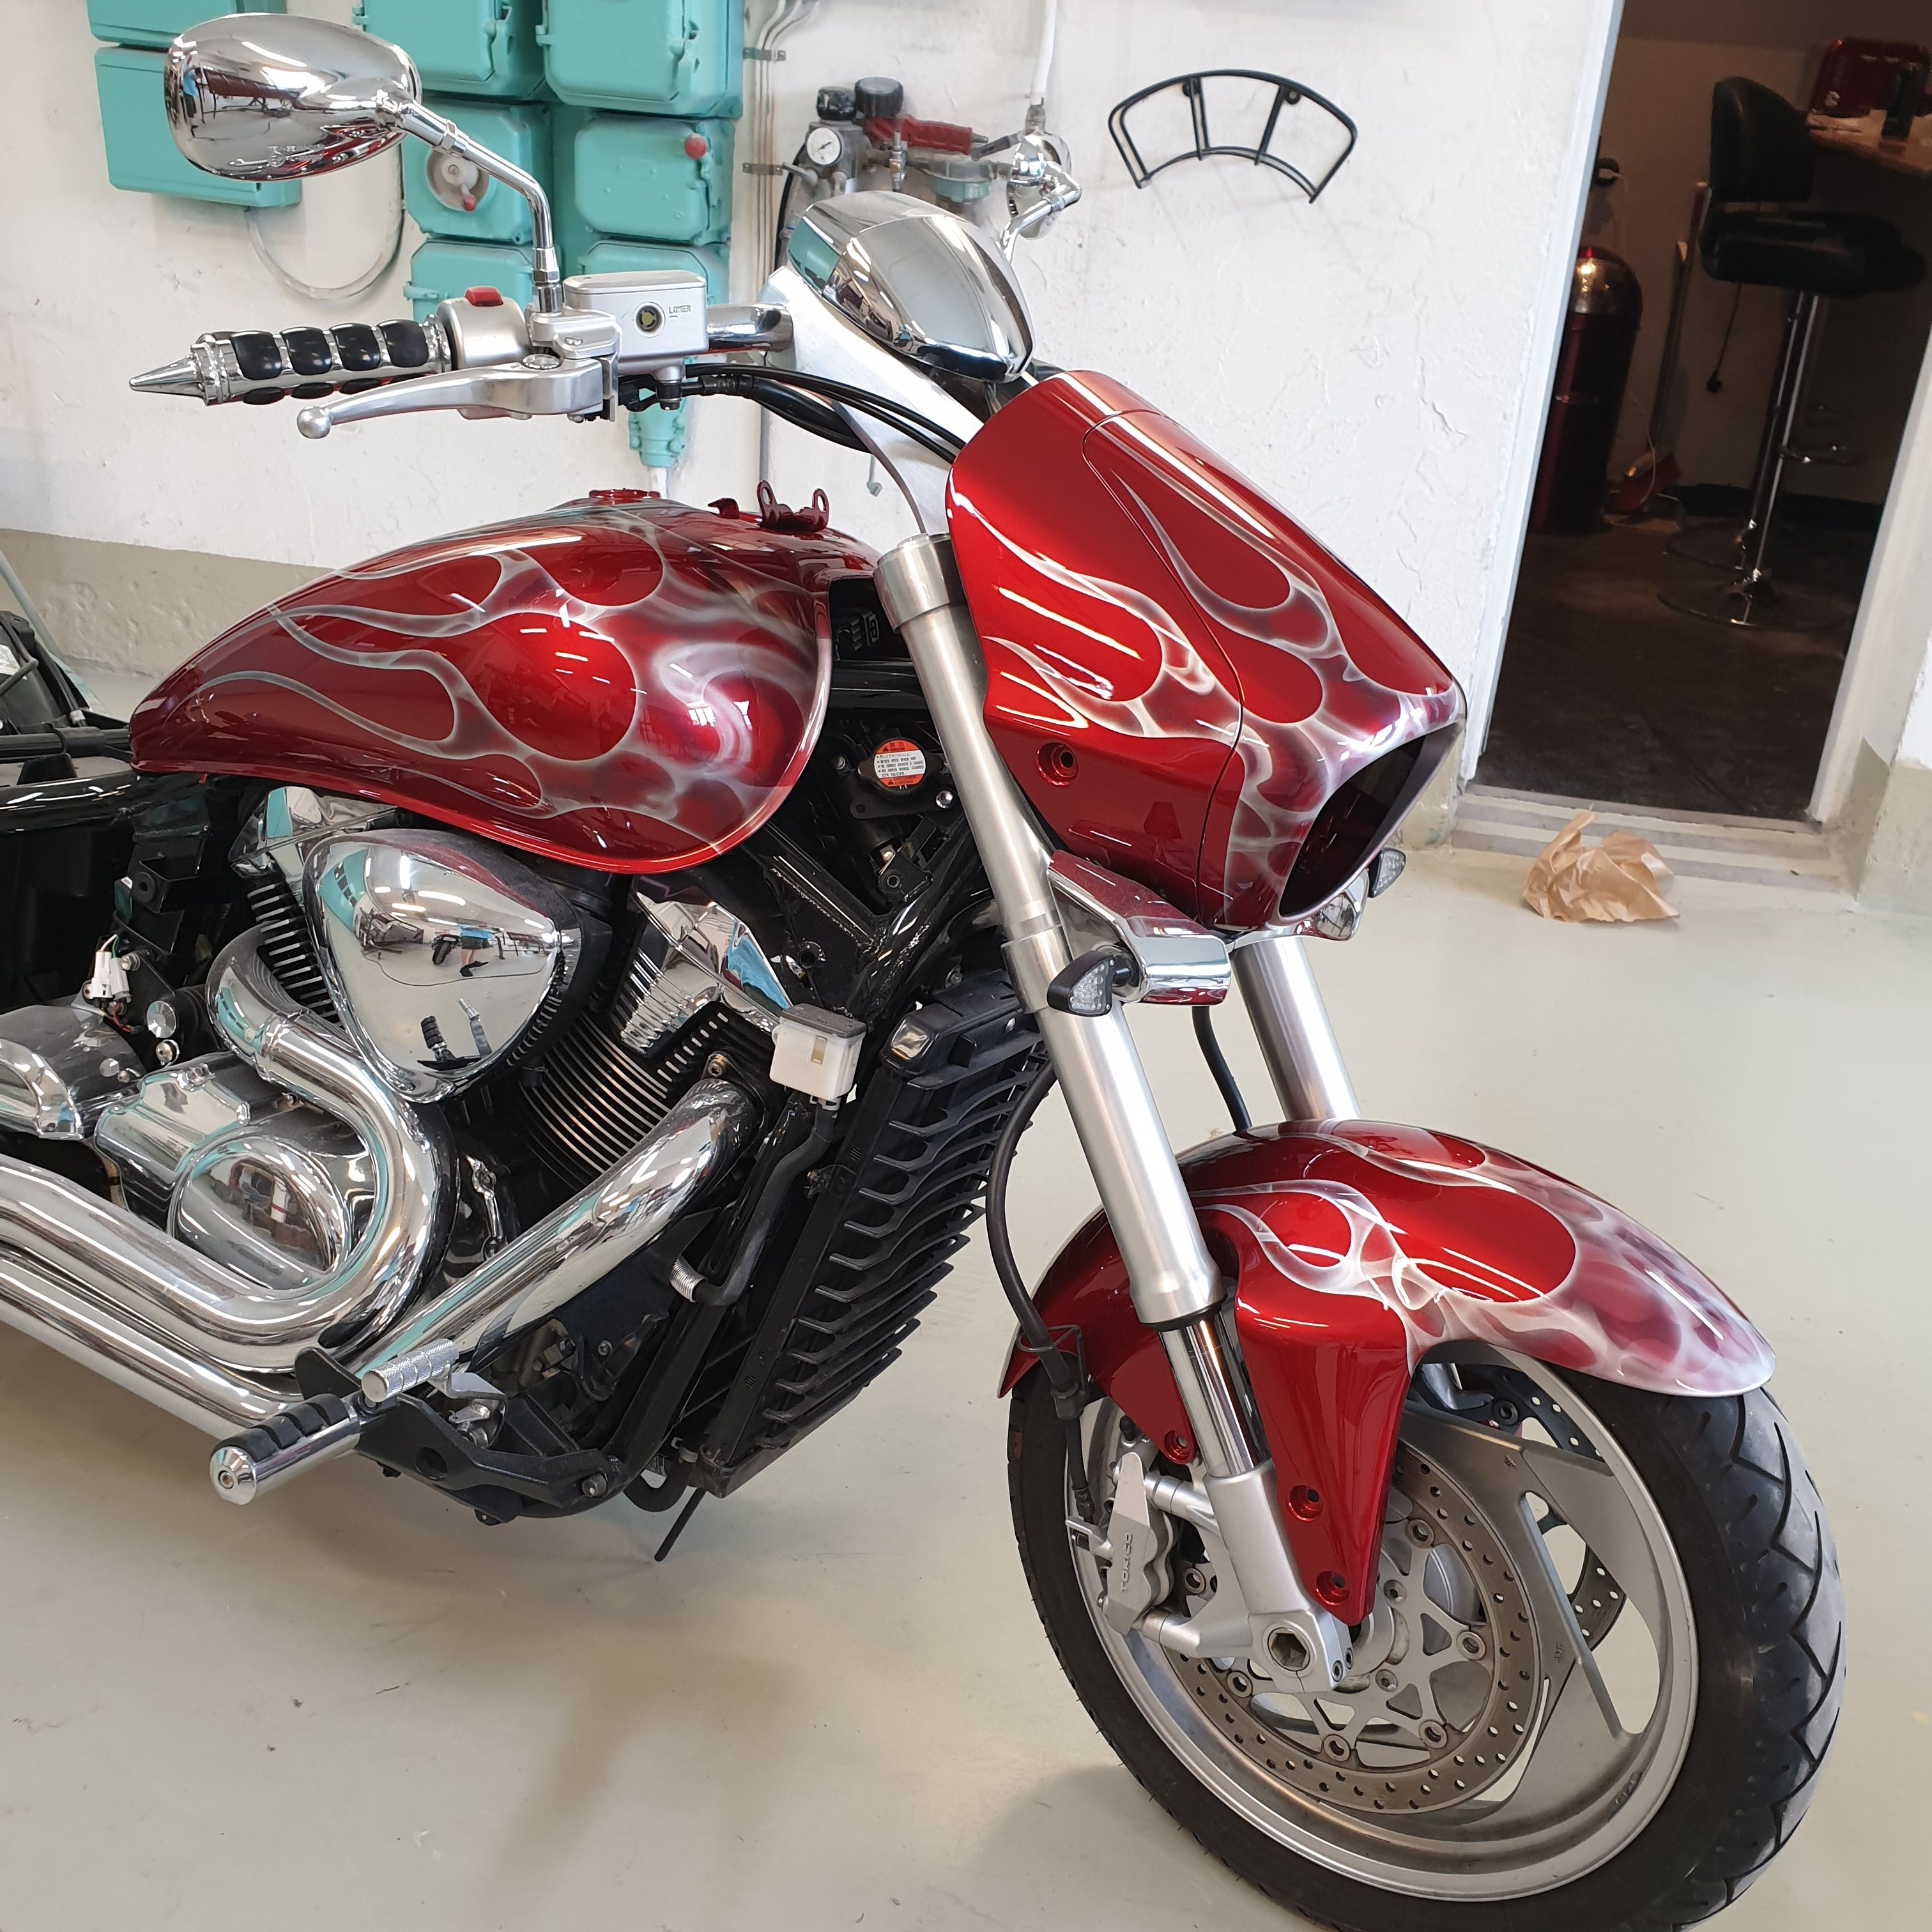 Suzuki Intruder m1800r red candy ghost classic flames 43